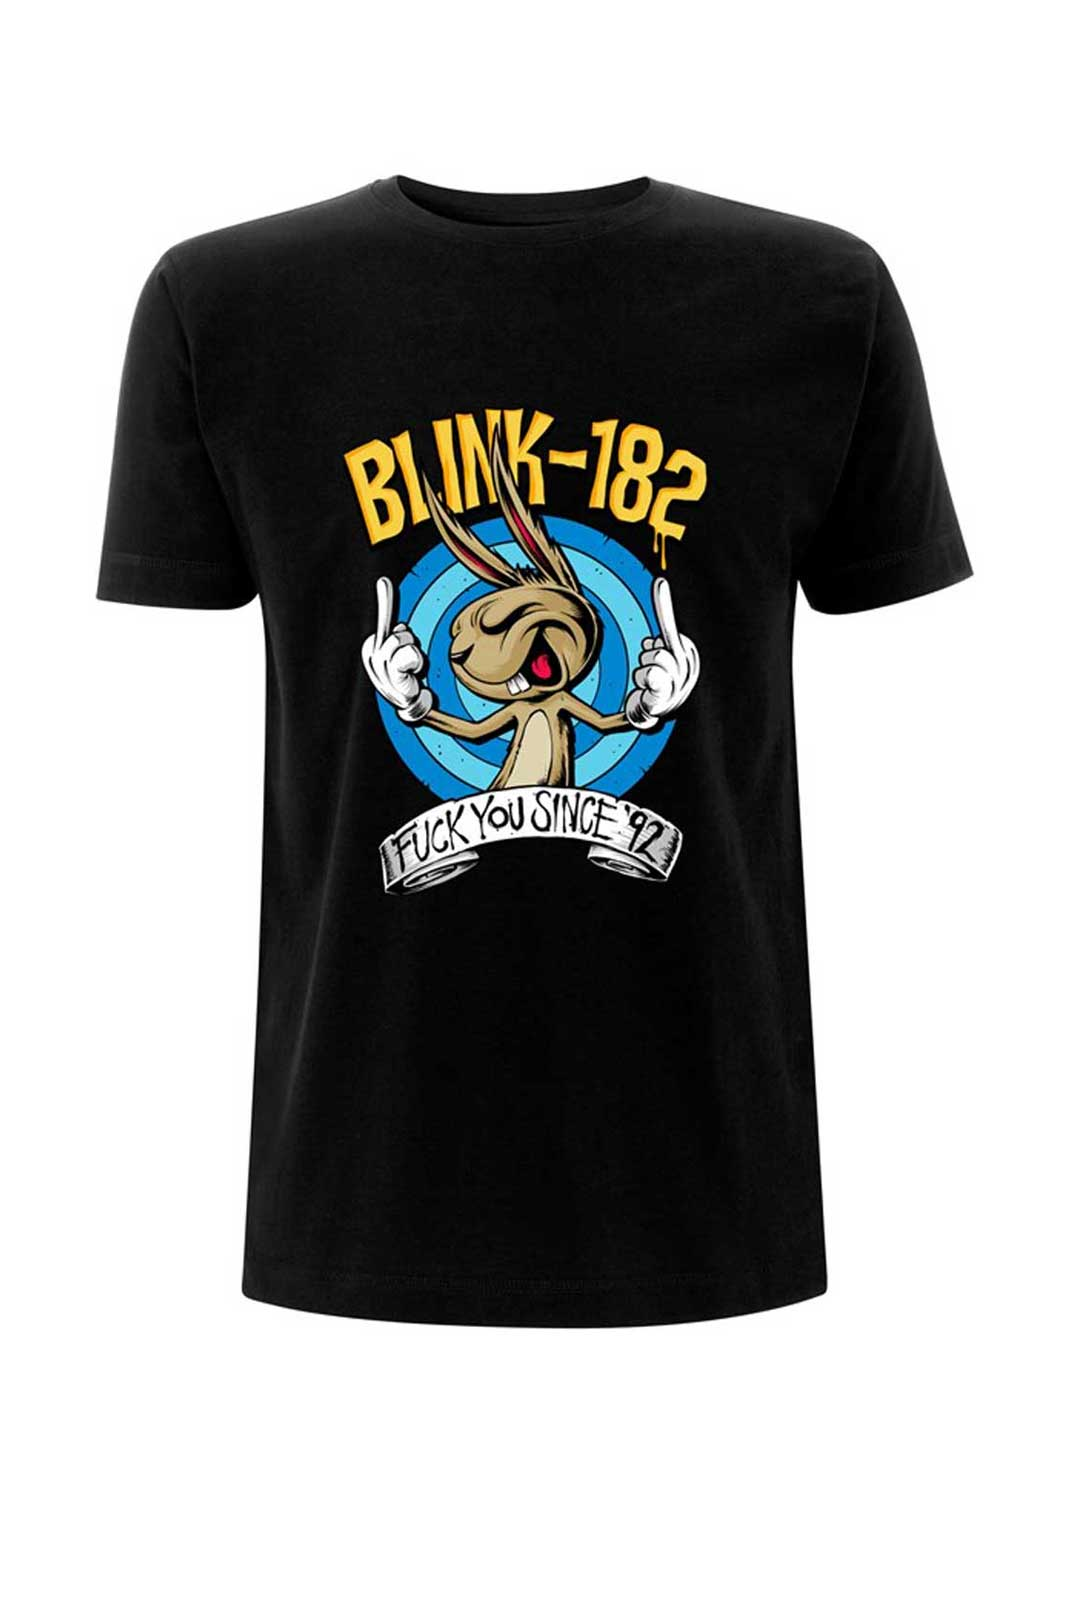 Tee Blink 182 FU since 92